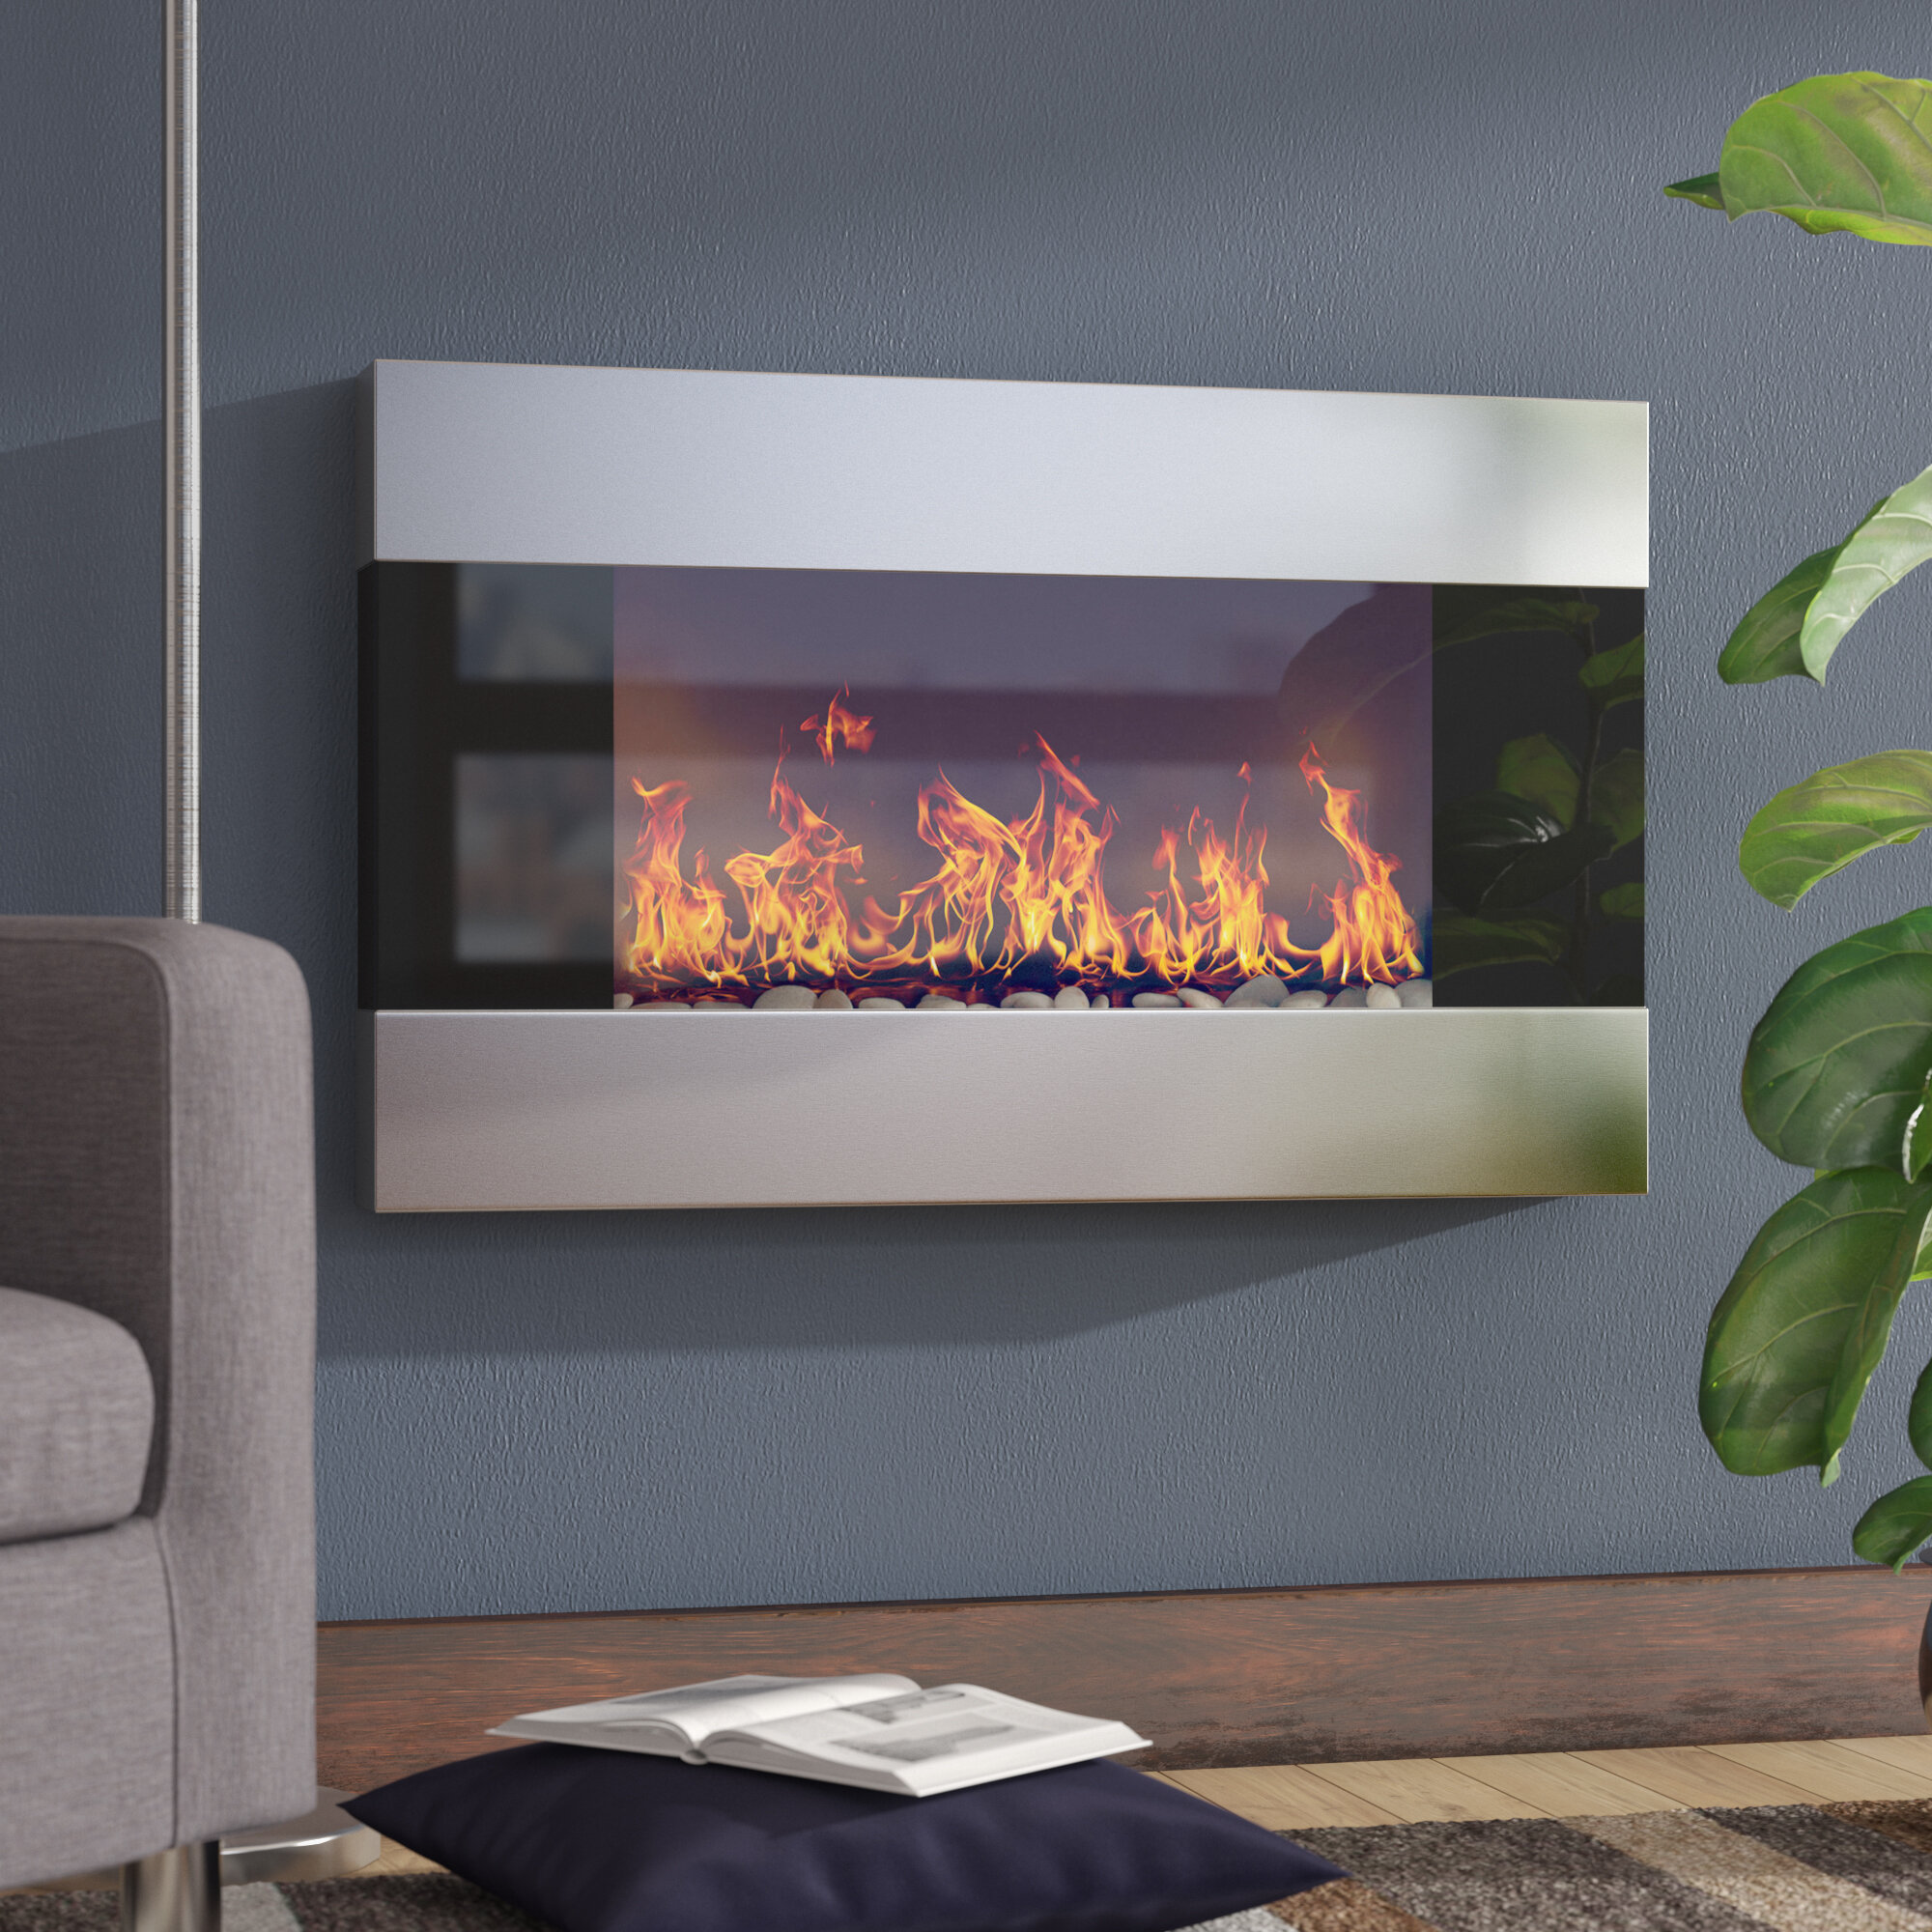 wallmounts dimplex wall mounted electric fireplace mounts en fireplaces